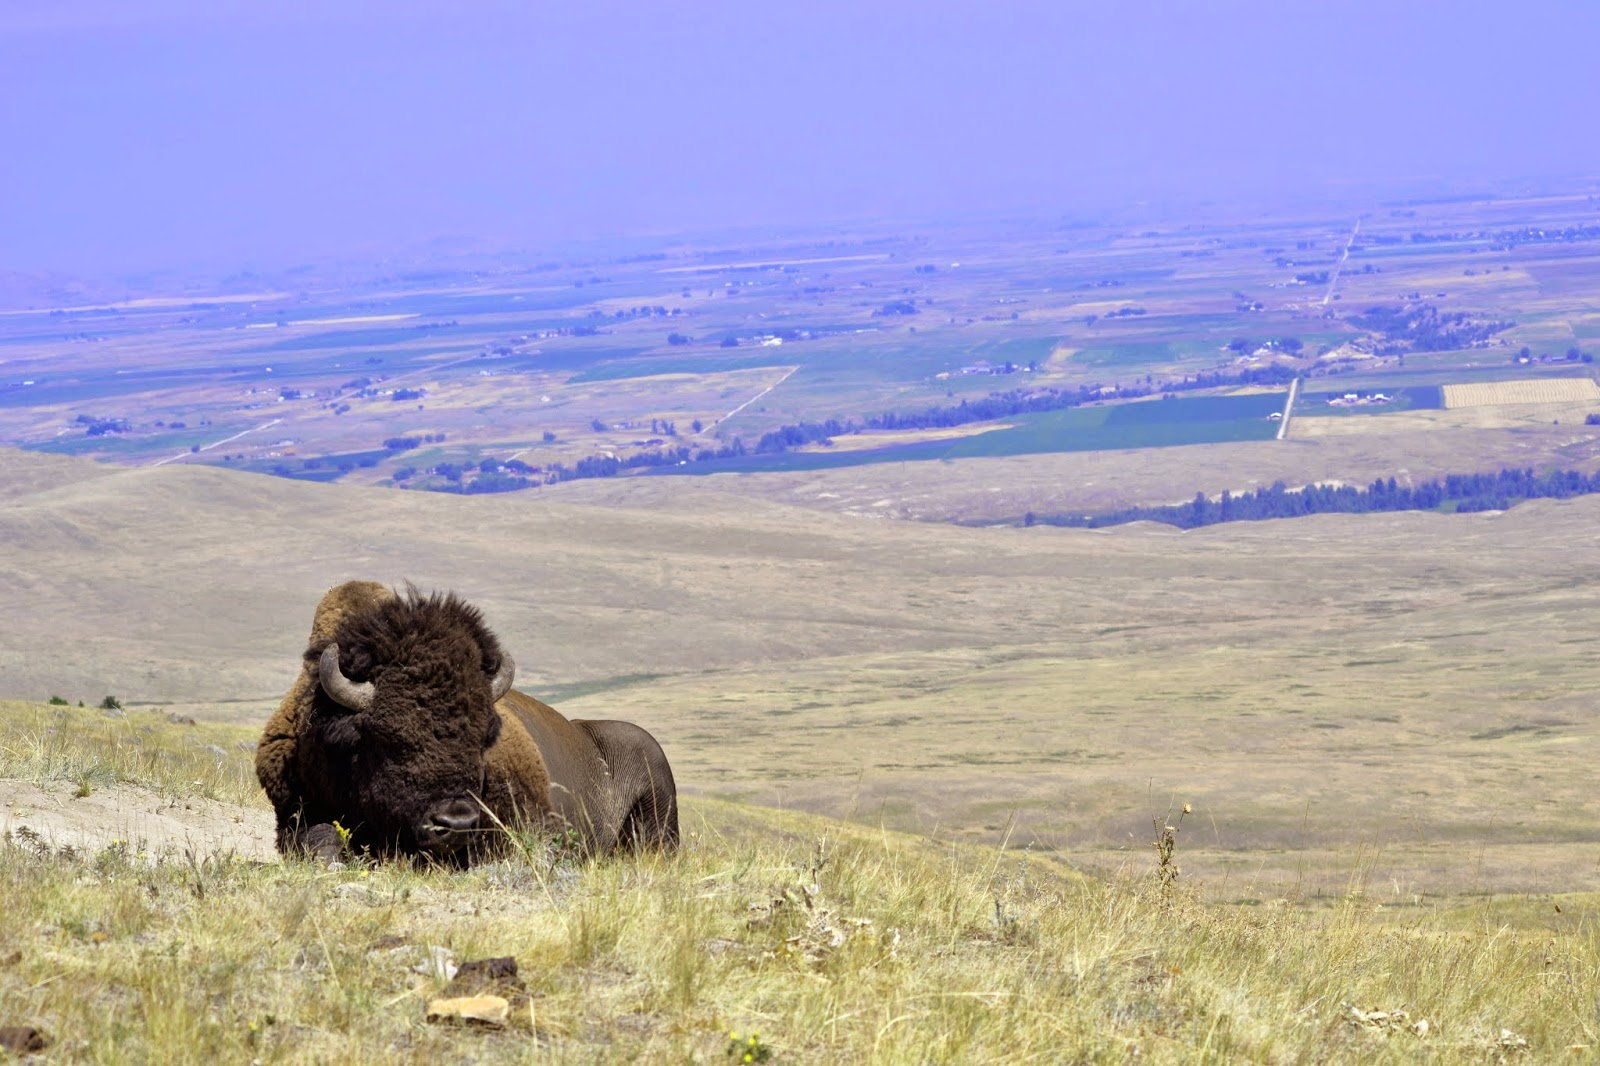 A Bison relaxes by the side of the road